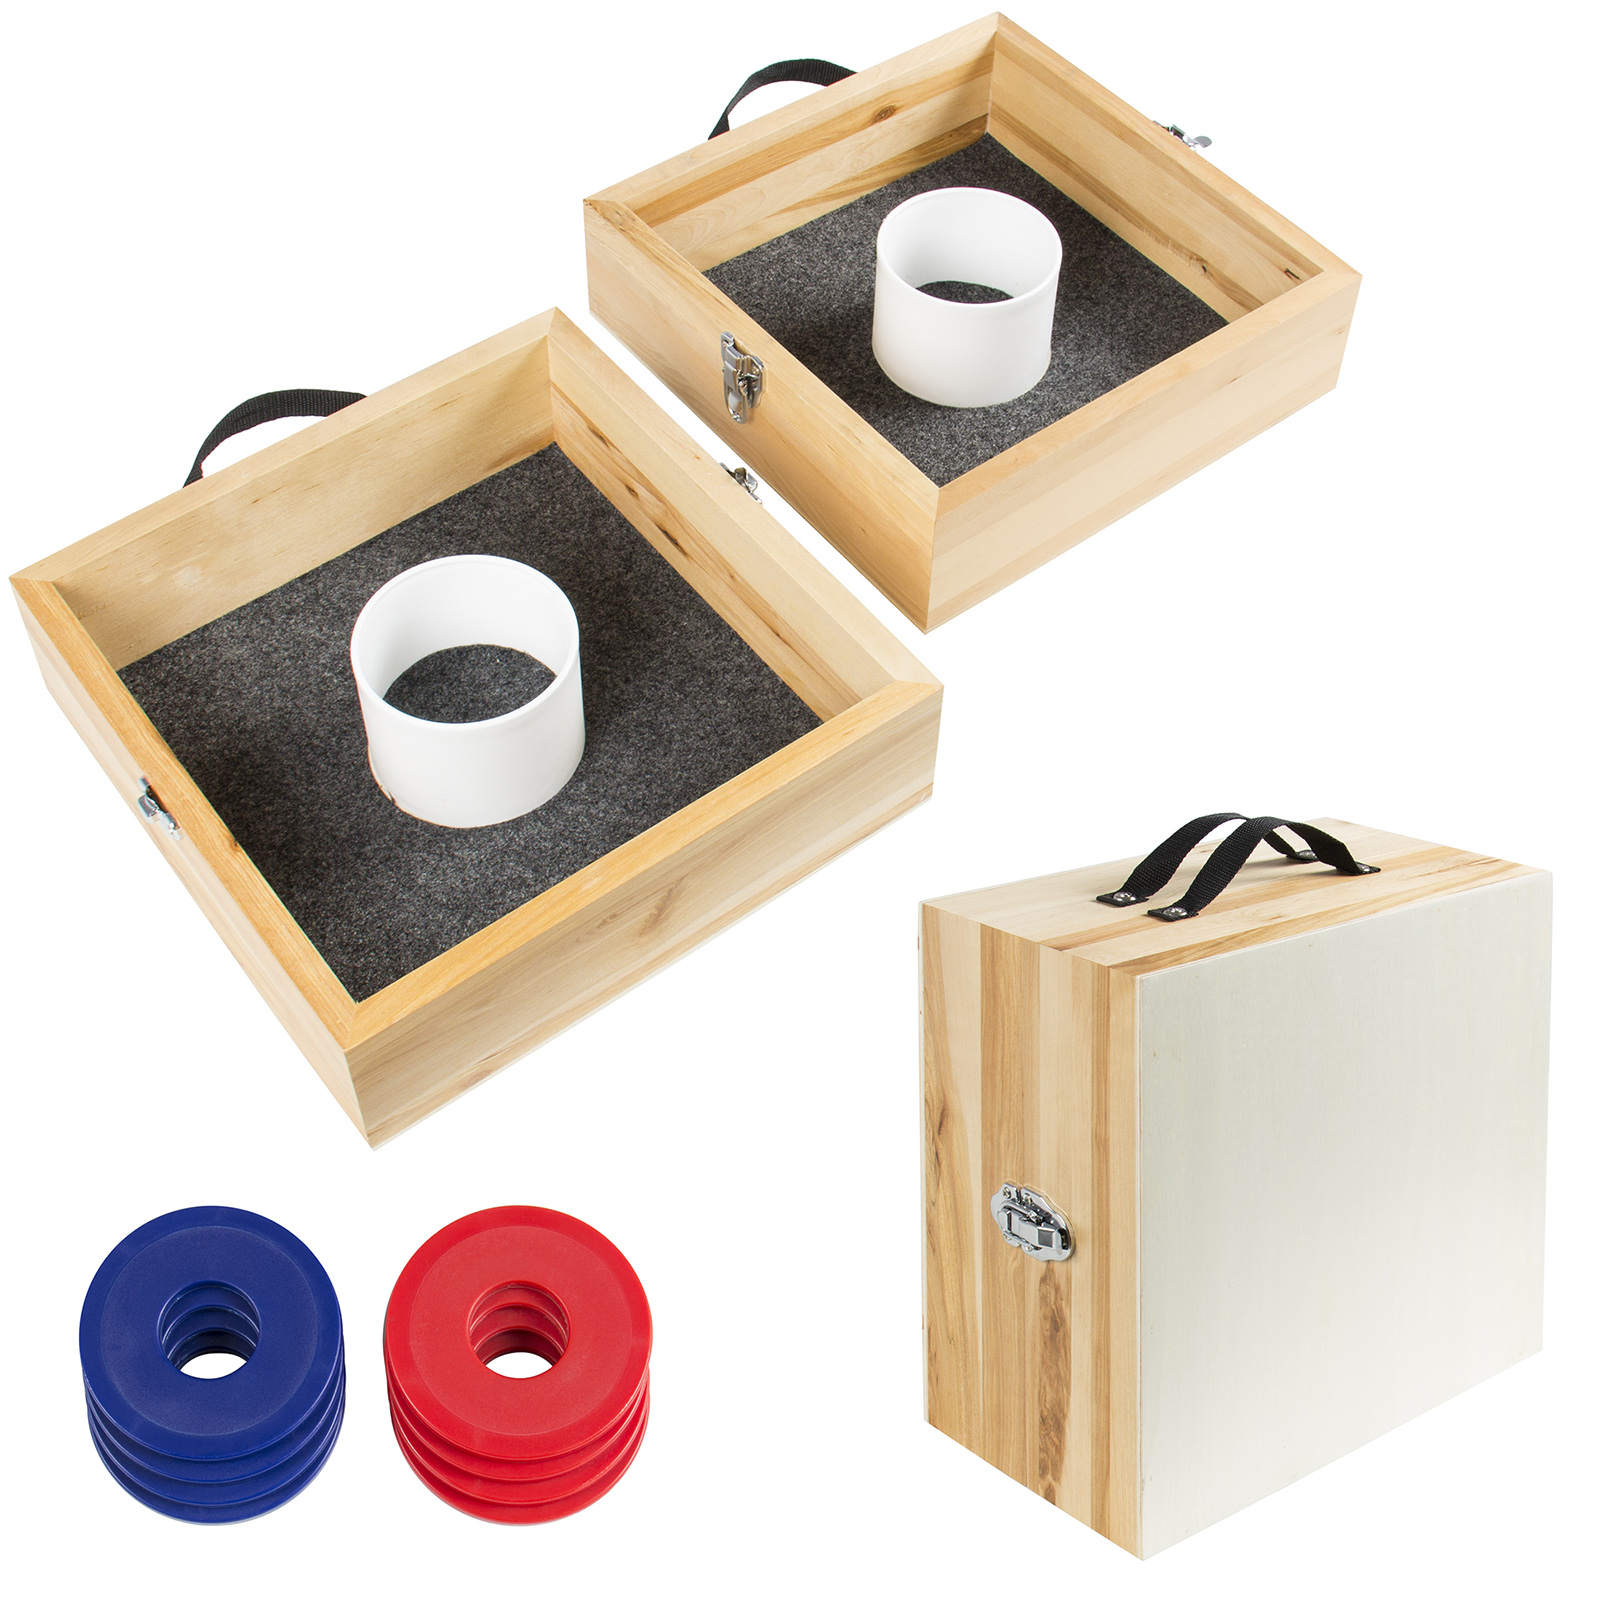 Best Choice Products Wood Washer Toss Game Set for Outdoor, Camping, Tailgate, Party w/ 2 Targets and 8 Washers - Multi